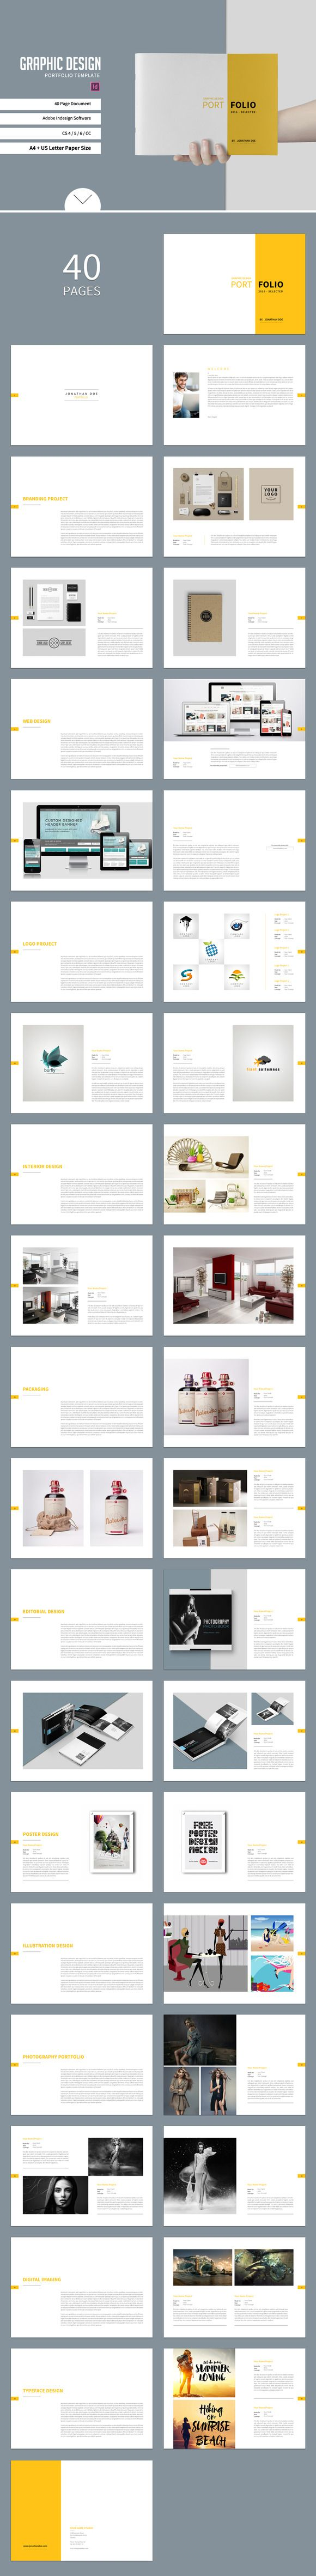 Graphic Design Portfolio Template @creativework247 | Brochure Design ...